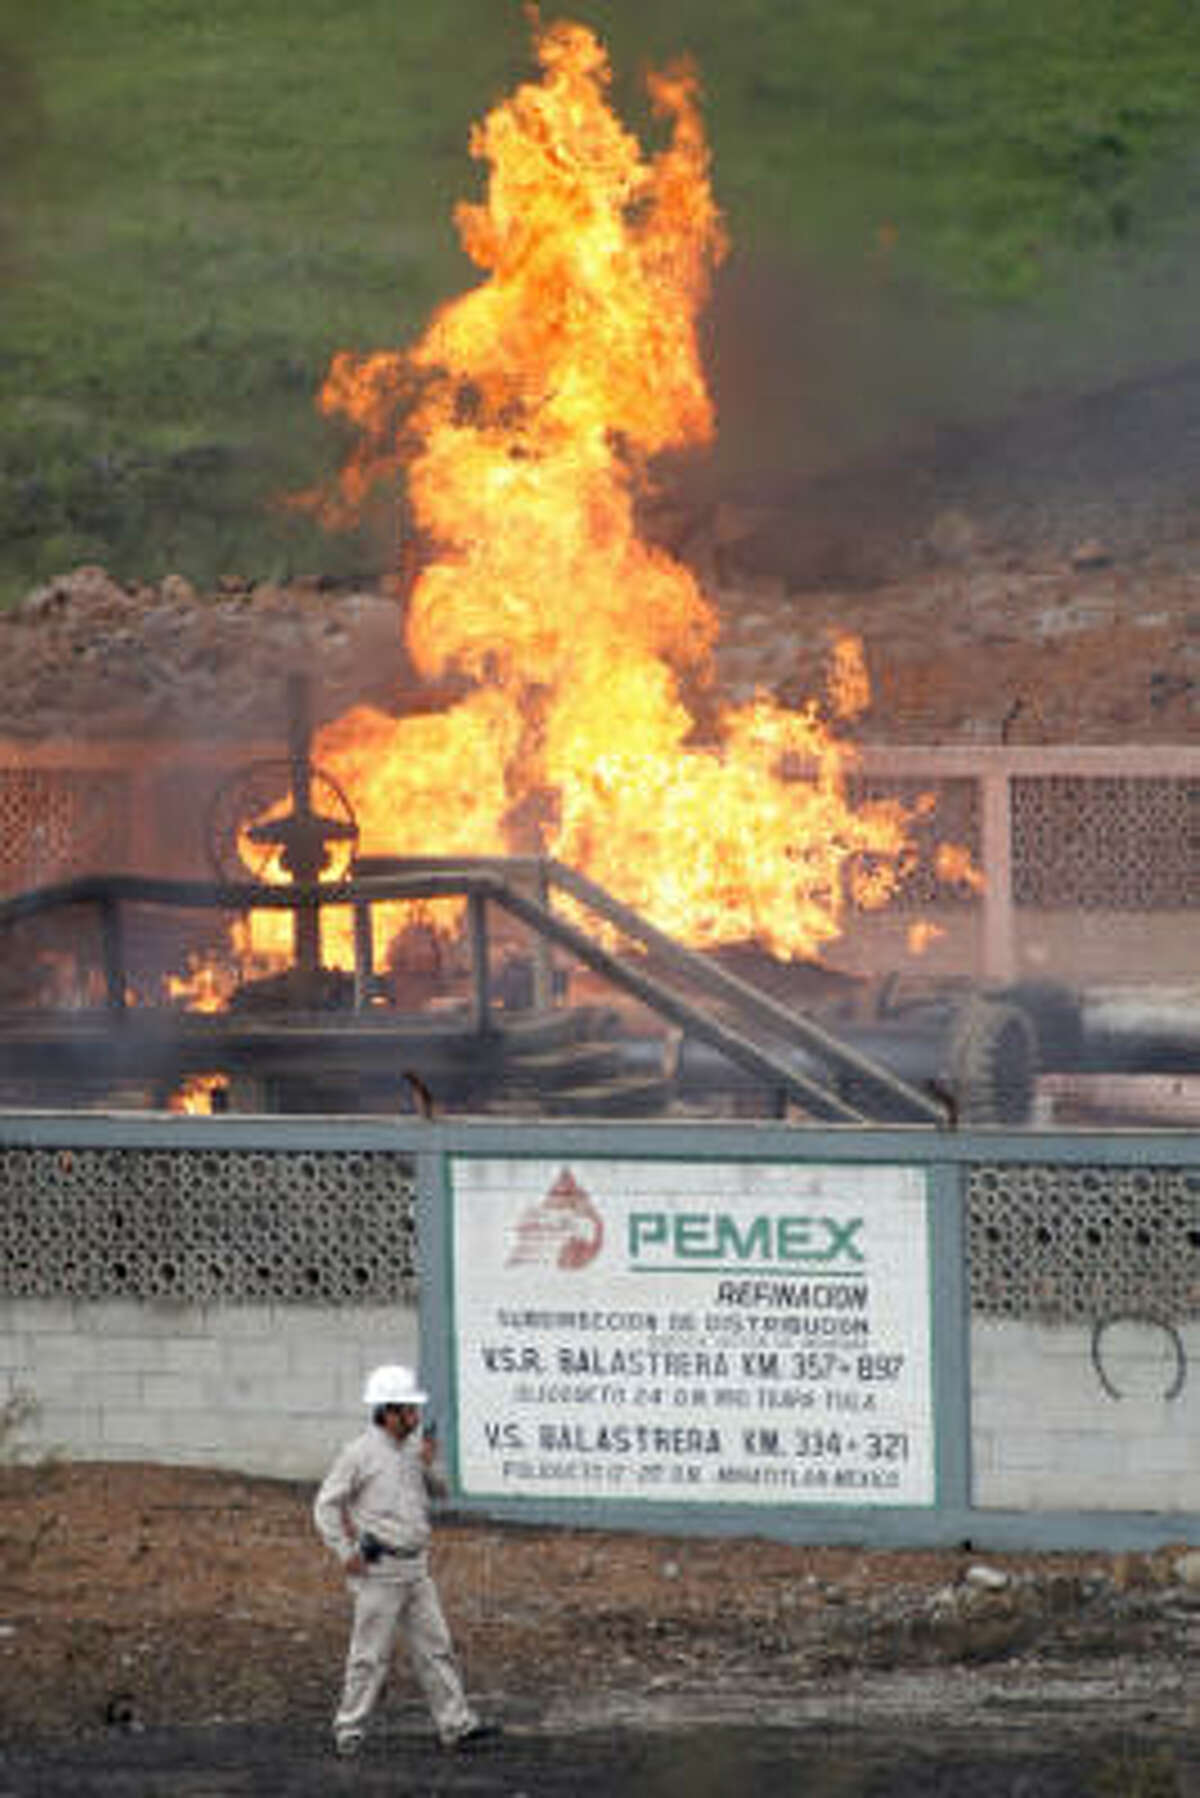 A worker talks on a radio in front of a burning facility of the state oil company Pemex near Maltrata, Mexico.